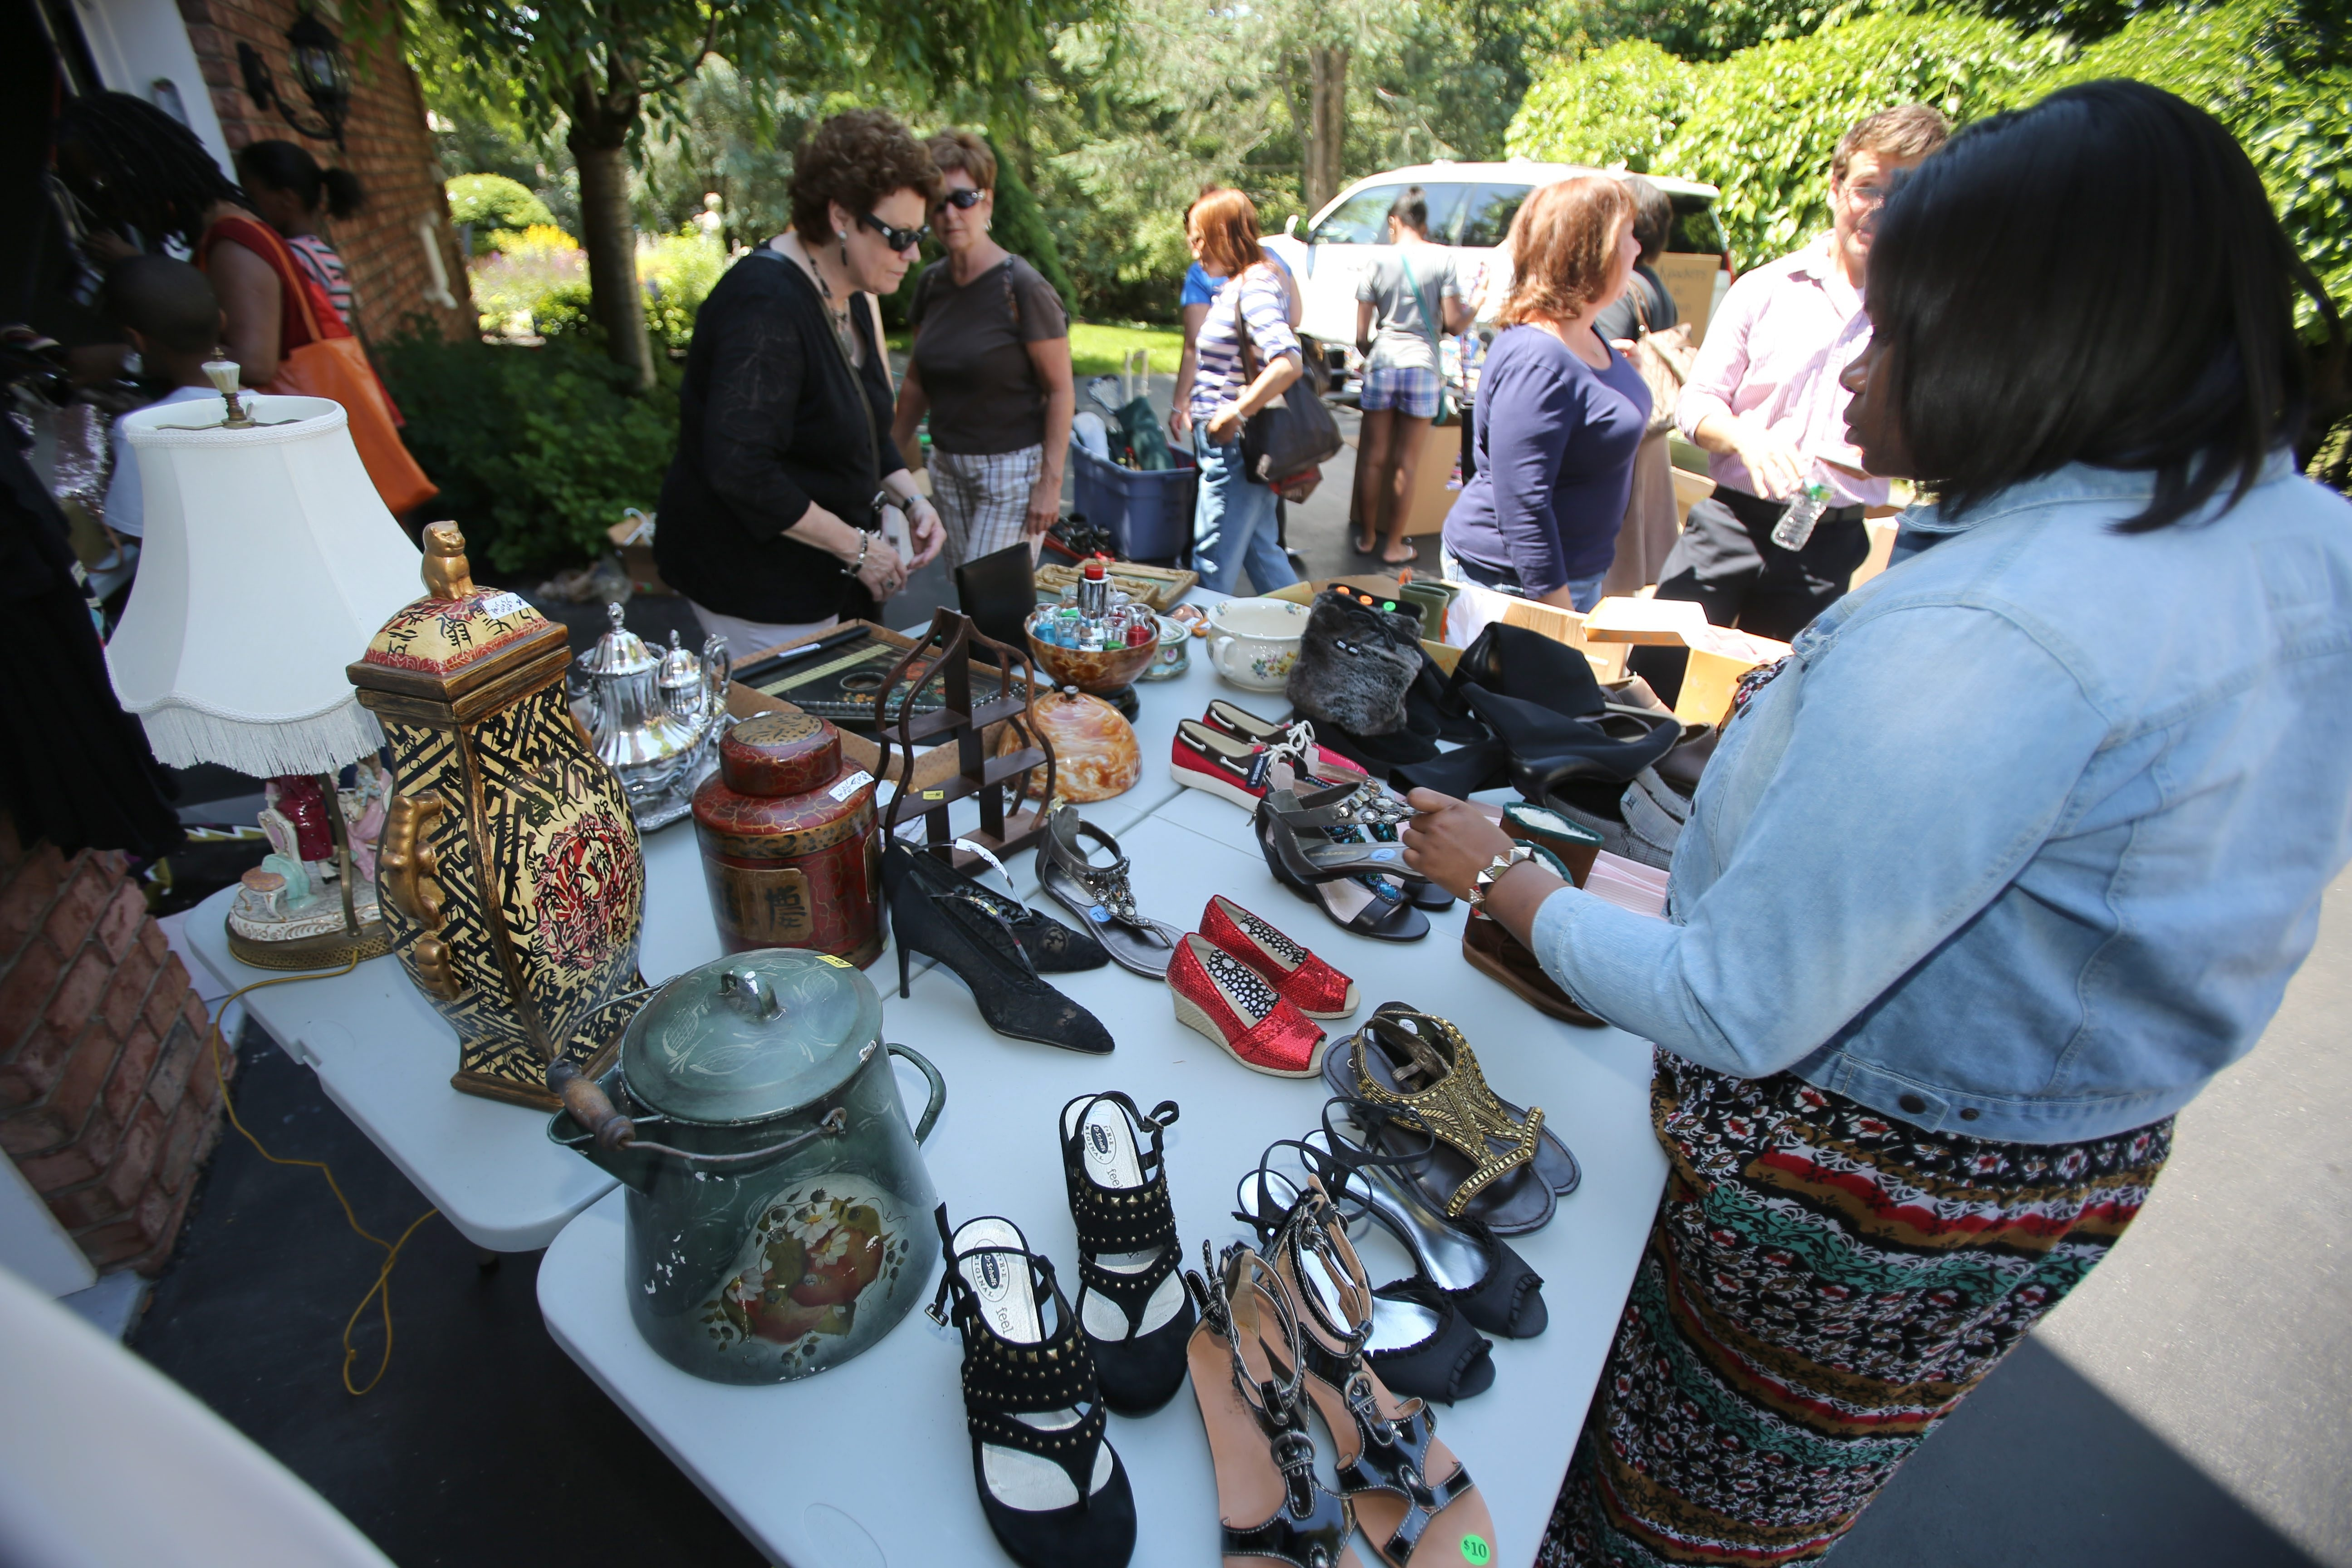 Potential customers look over a table of shoes and decorative items at a yard sale in the Spaulding Lake neighborhood Friday in Clarence. The annual sale continues today in the upscale community.